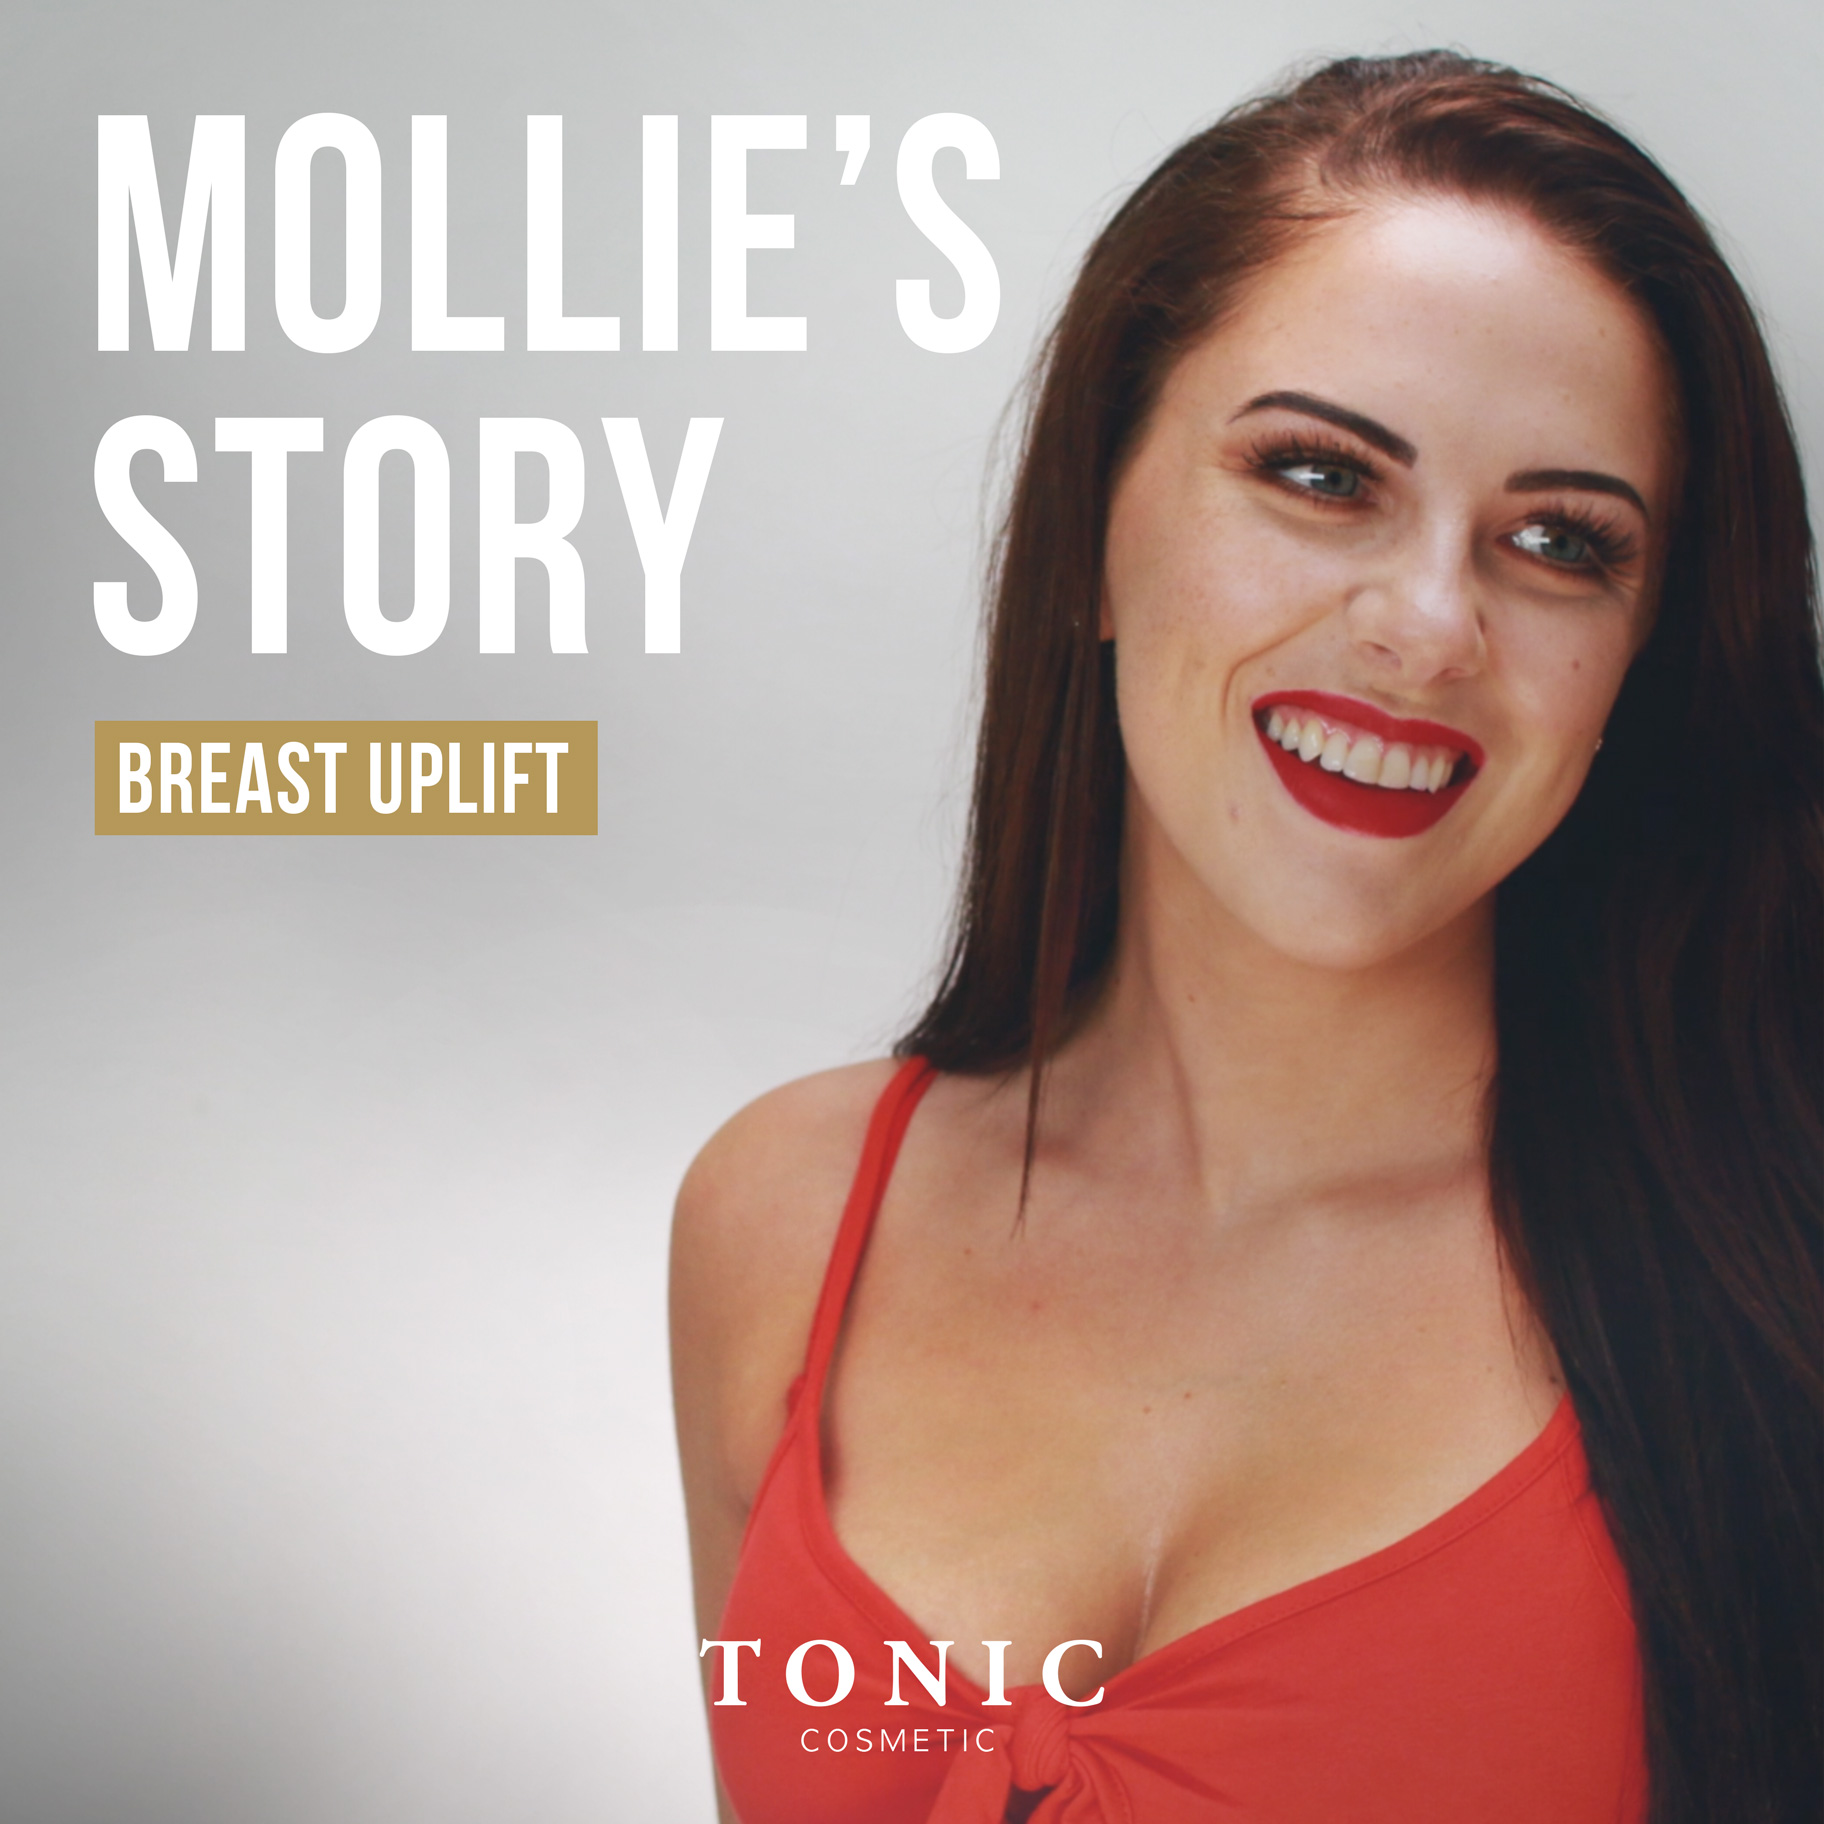 Cosmetic-Surgery-Mollie's-Story-breast-uplift-boob-job